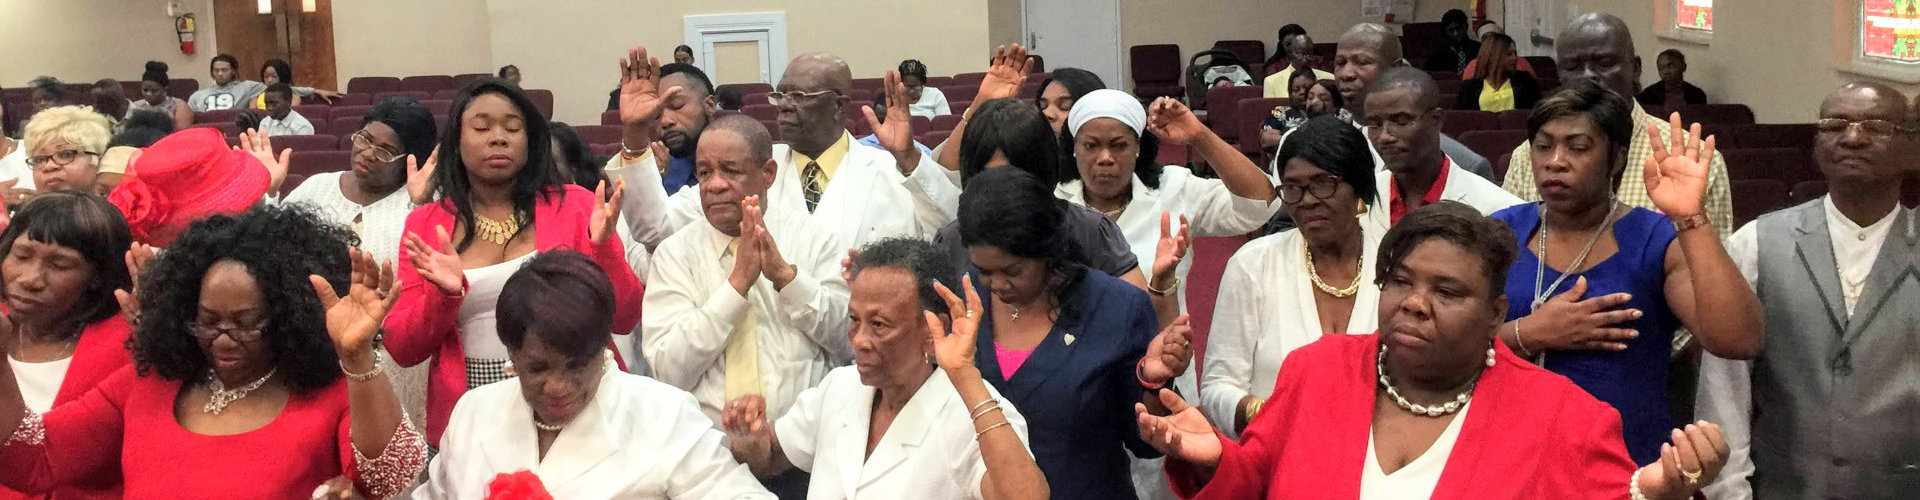 Group of People worshiping